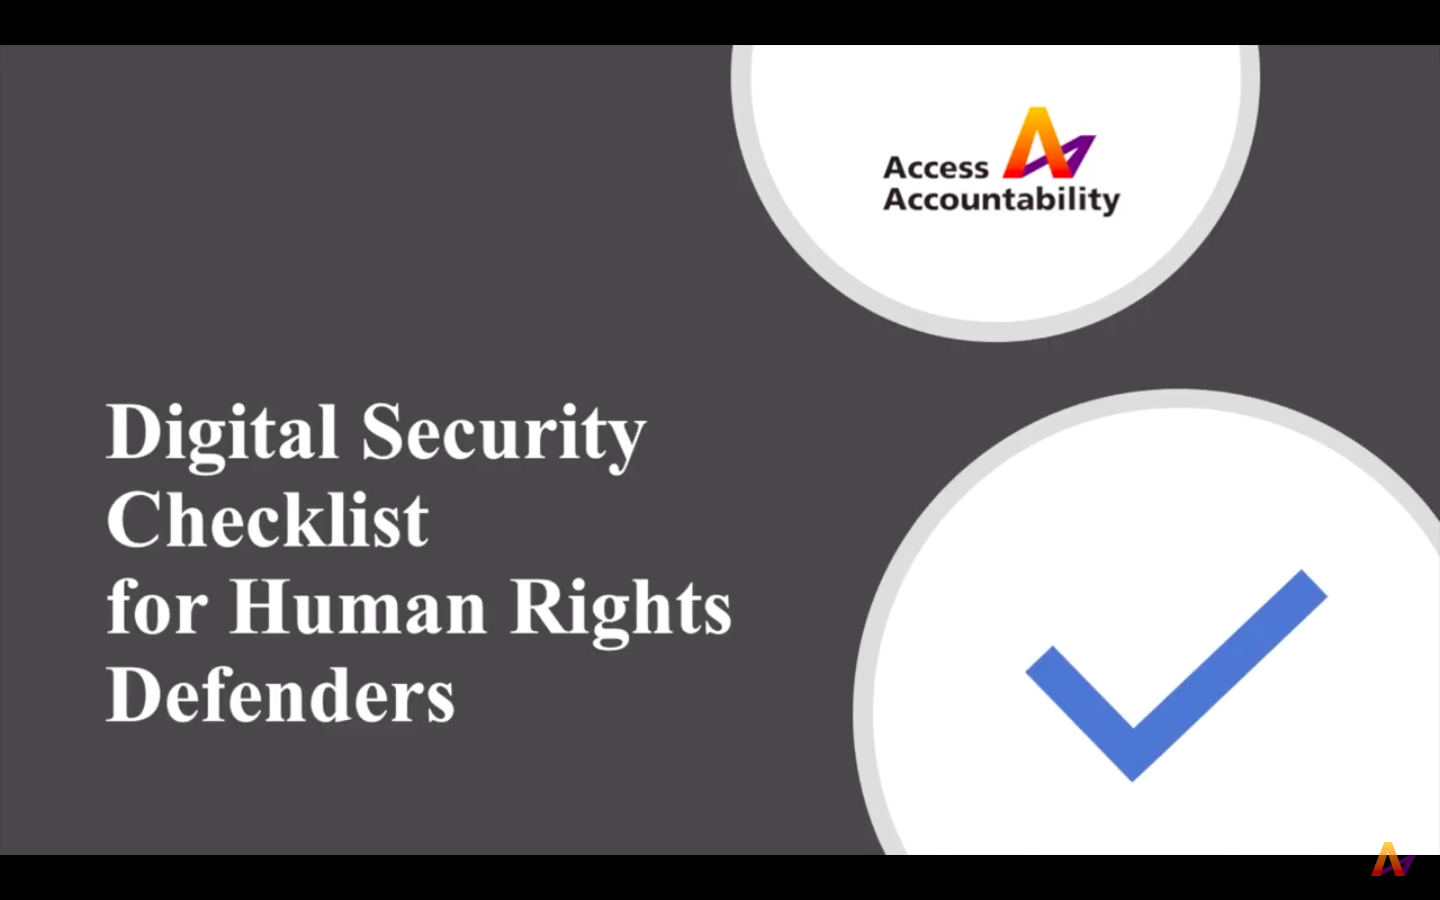 Digital Security Checklist for Human Rights Defenders